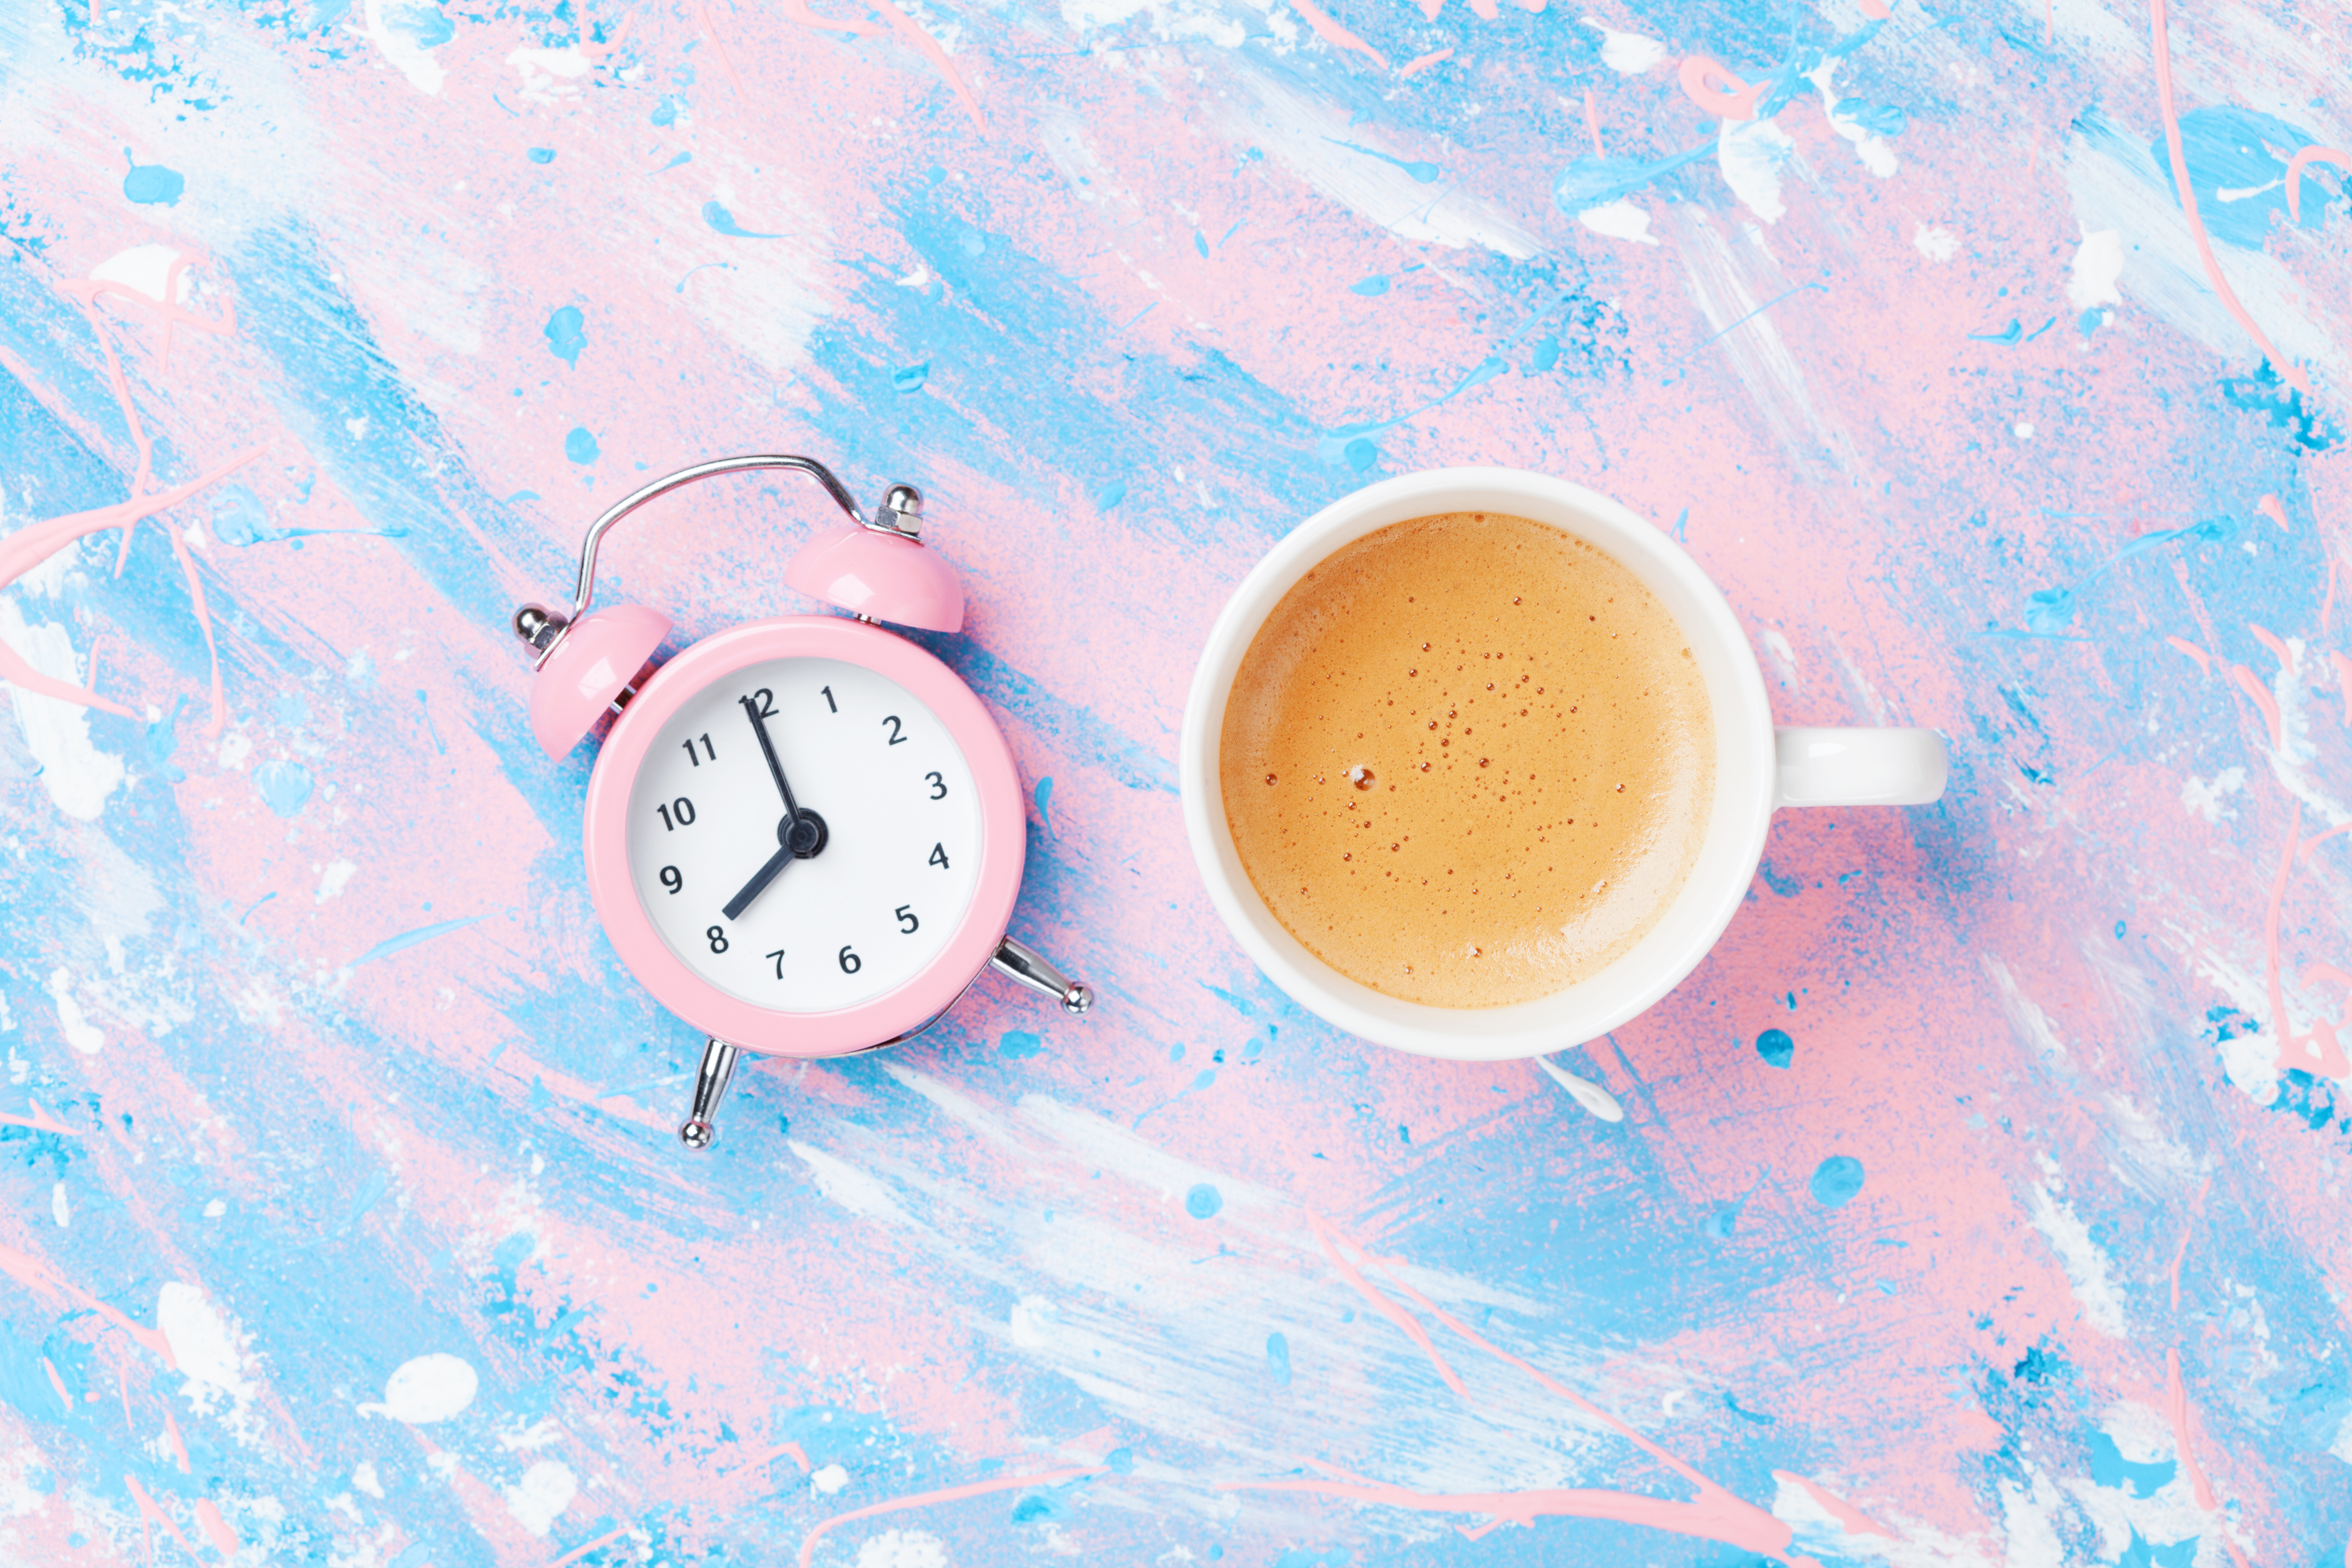 Lessons From an Author Who Has Interviewed Over 300 High Achievers About Their Morning Routines